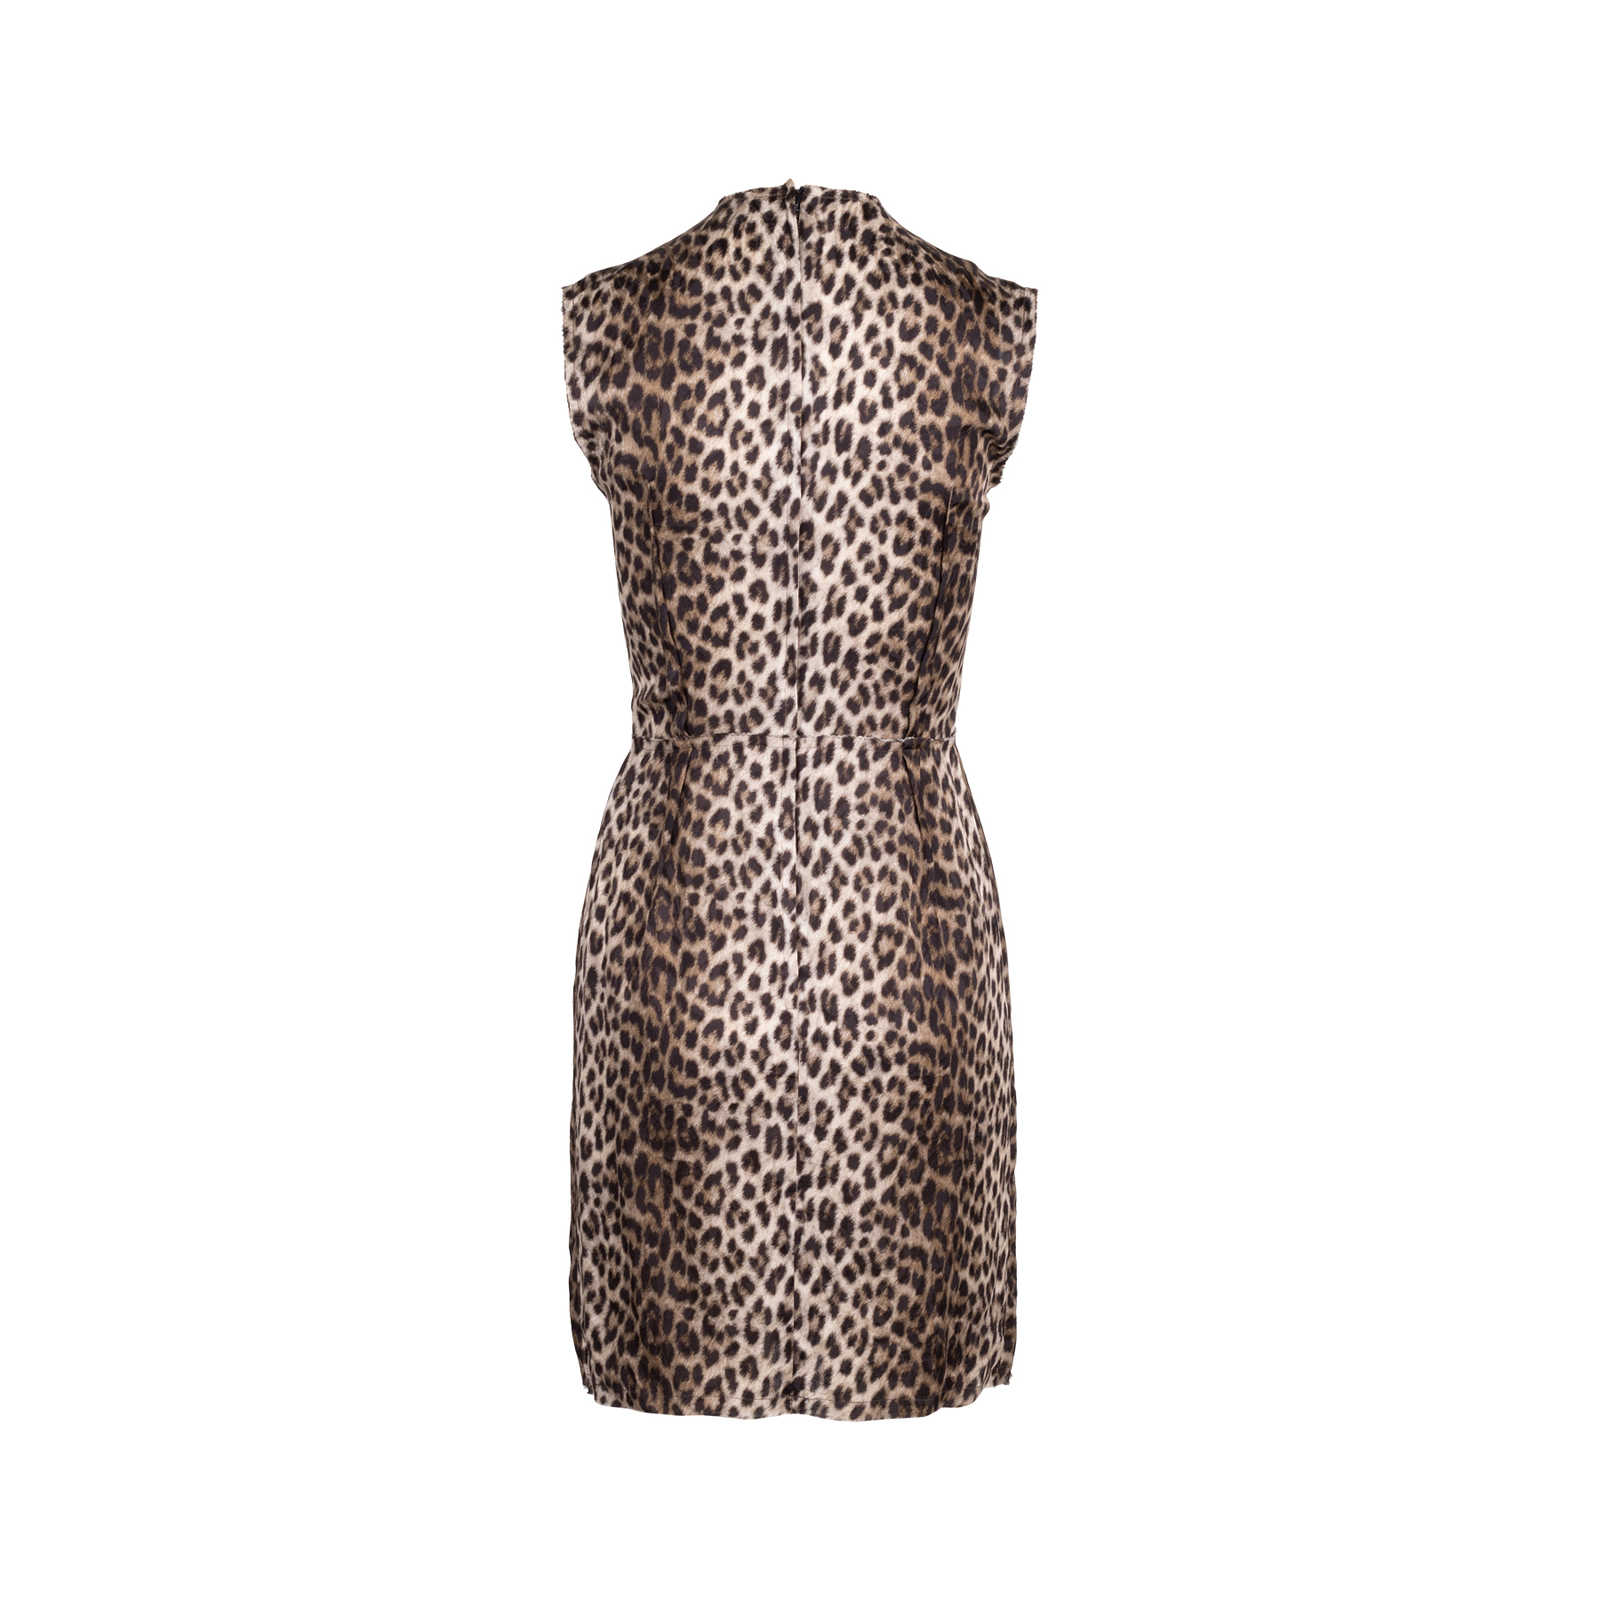 ... Authentic Second Hand Lanvin Leopard Printed Dress (PSS-049-00057) -  Thumbnail ... 71445e925